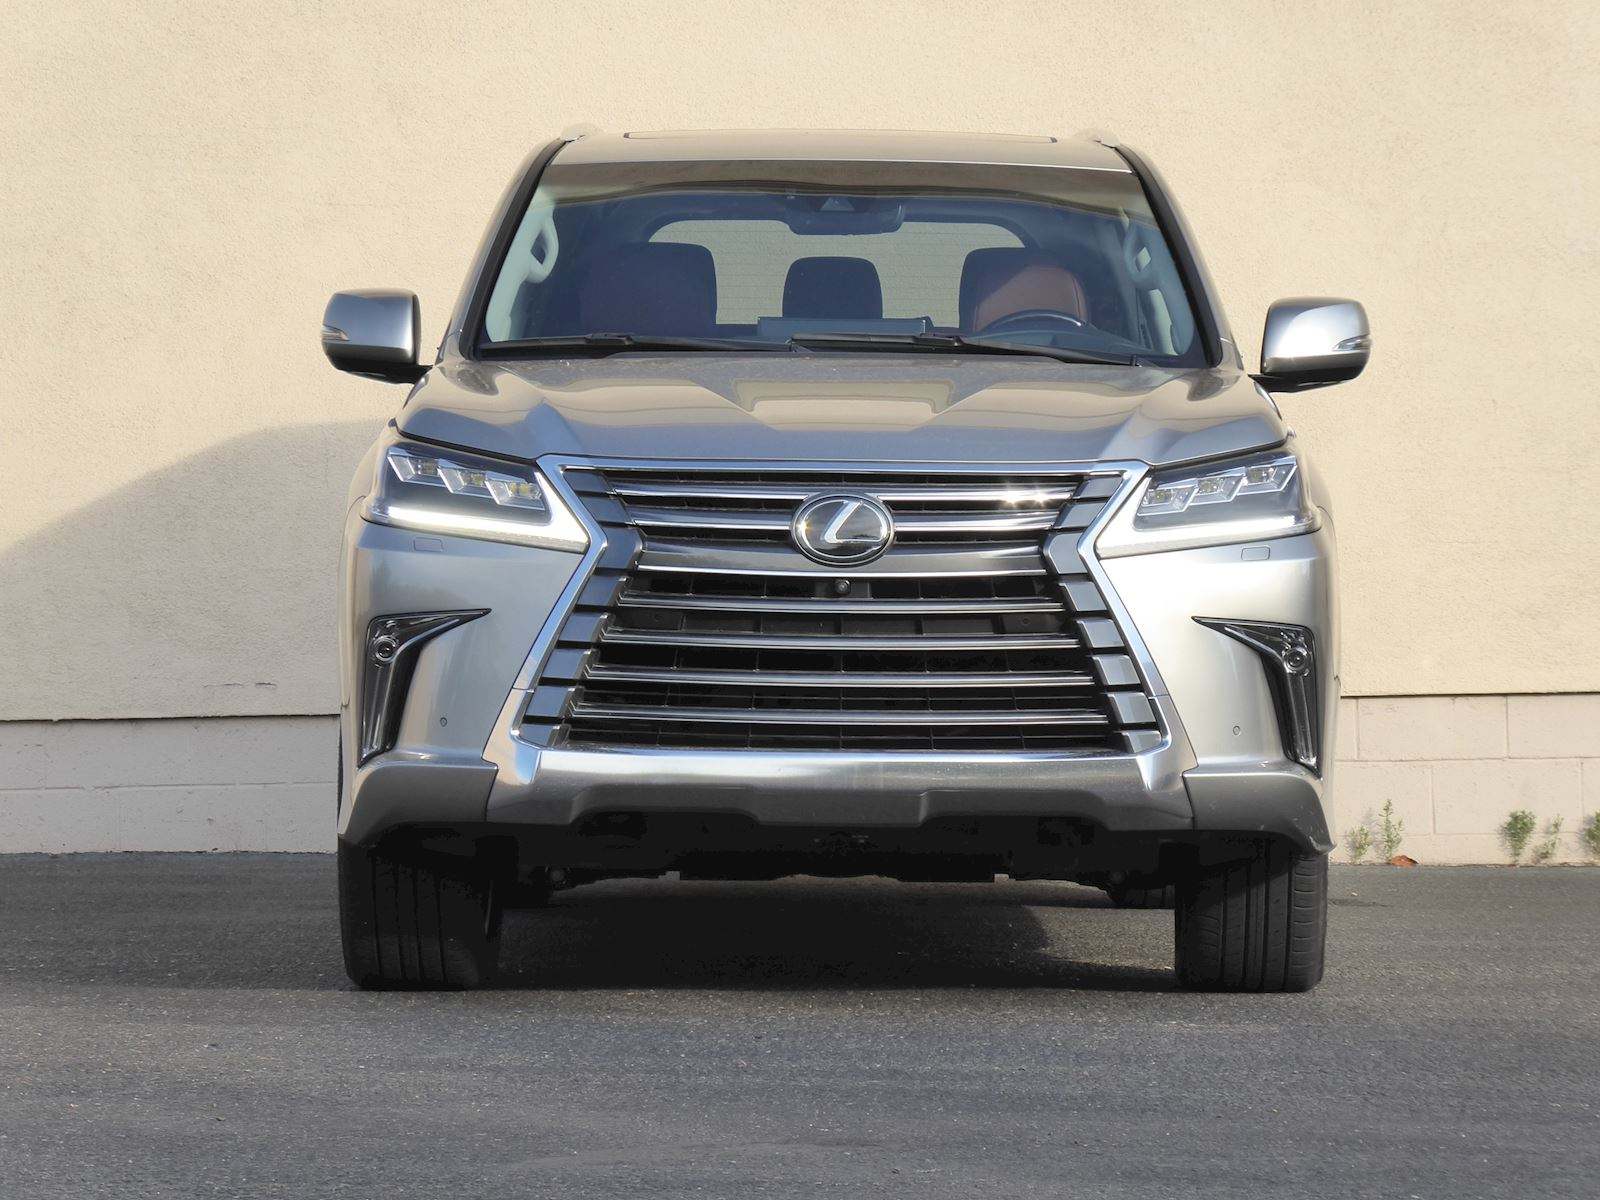 2020 Lexus LX 570 Front Mugshot Photo